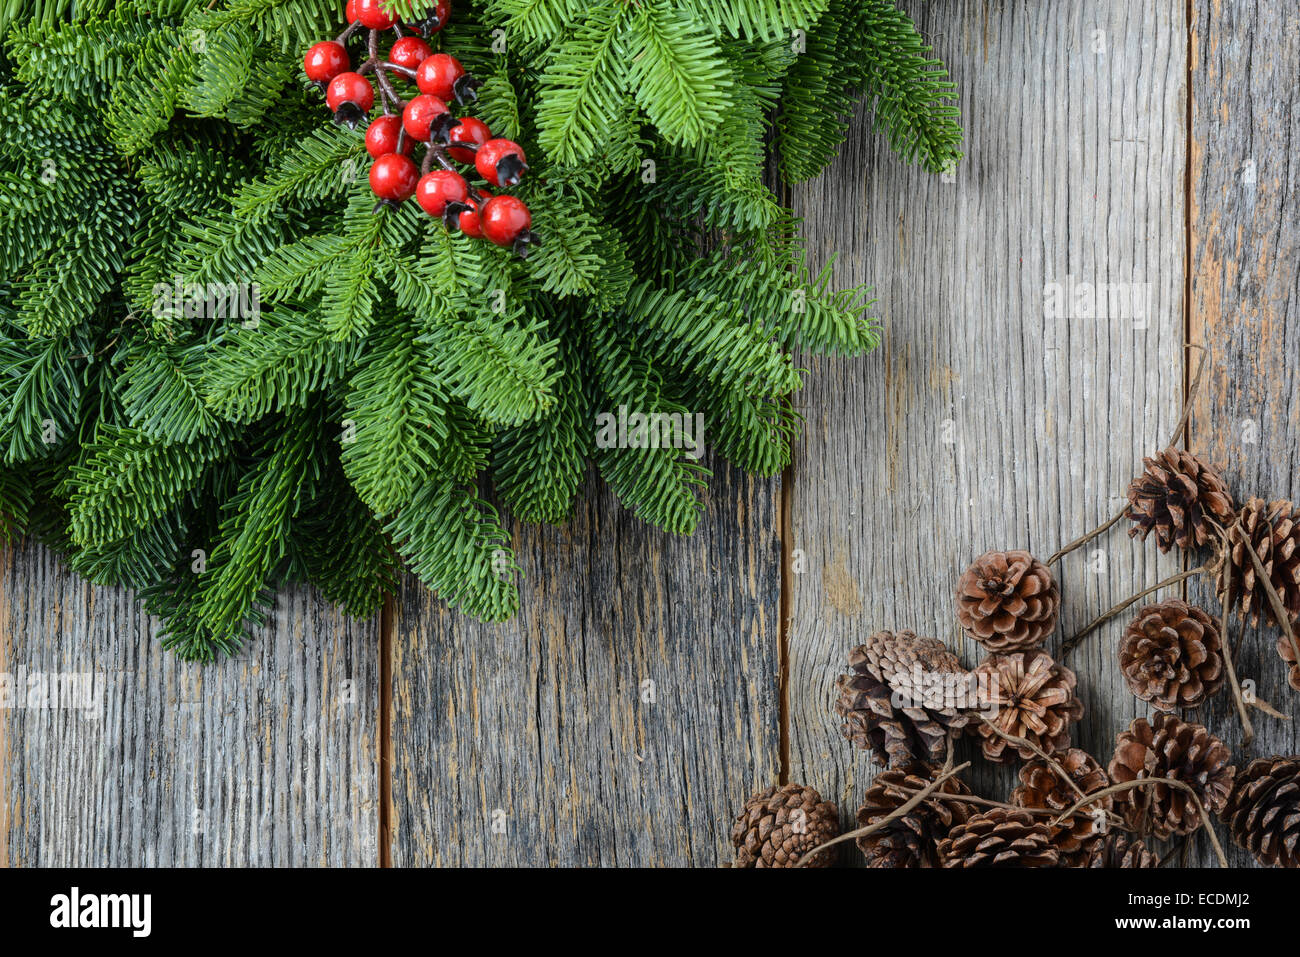 Tree Branch With Holly Berry And Pine Cones On Rustic